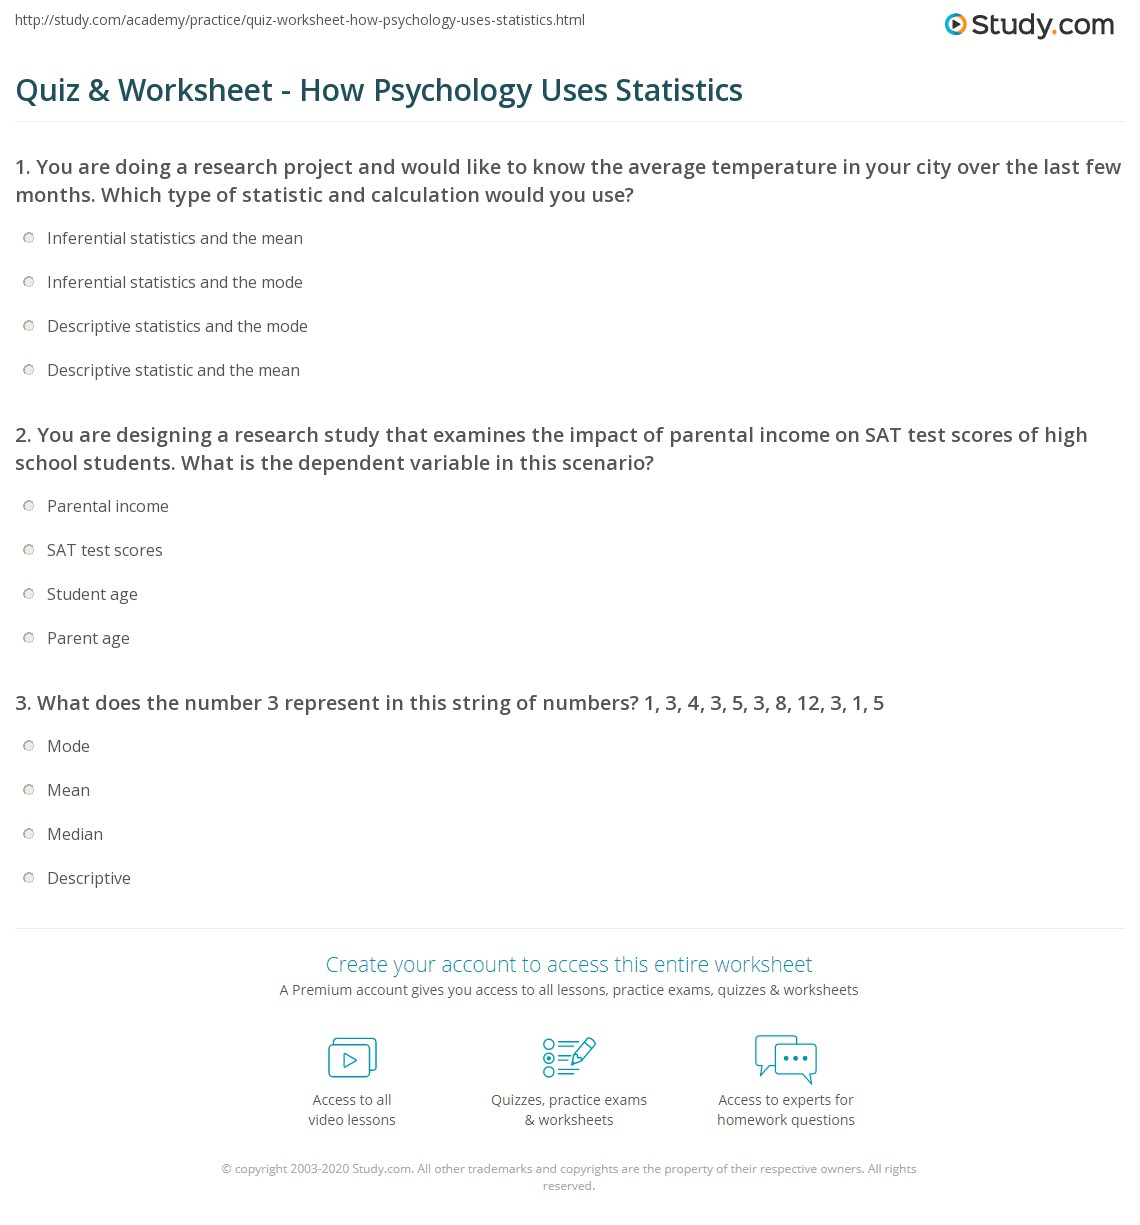 psychology prac This page presents exam 1 problems and solutions, along with practice problems and solutions.